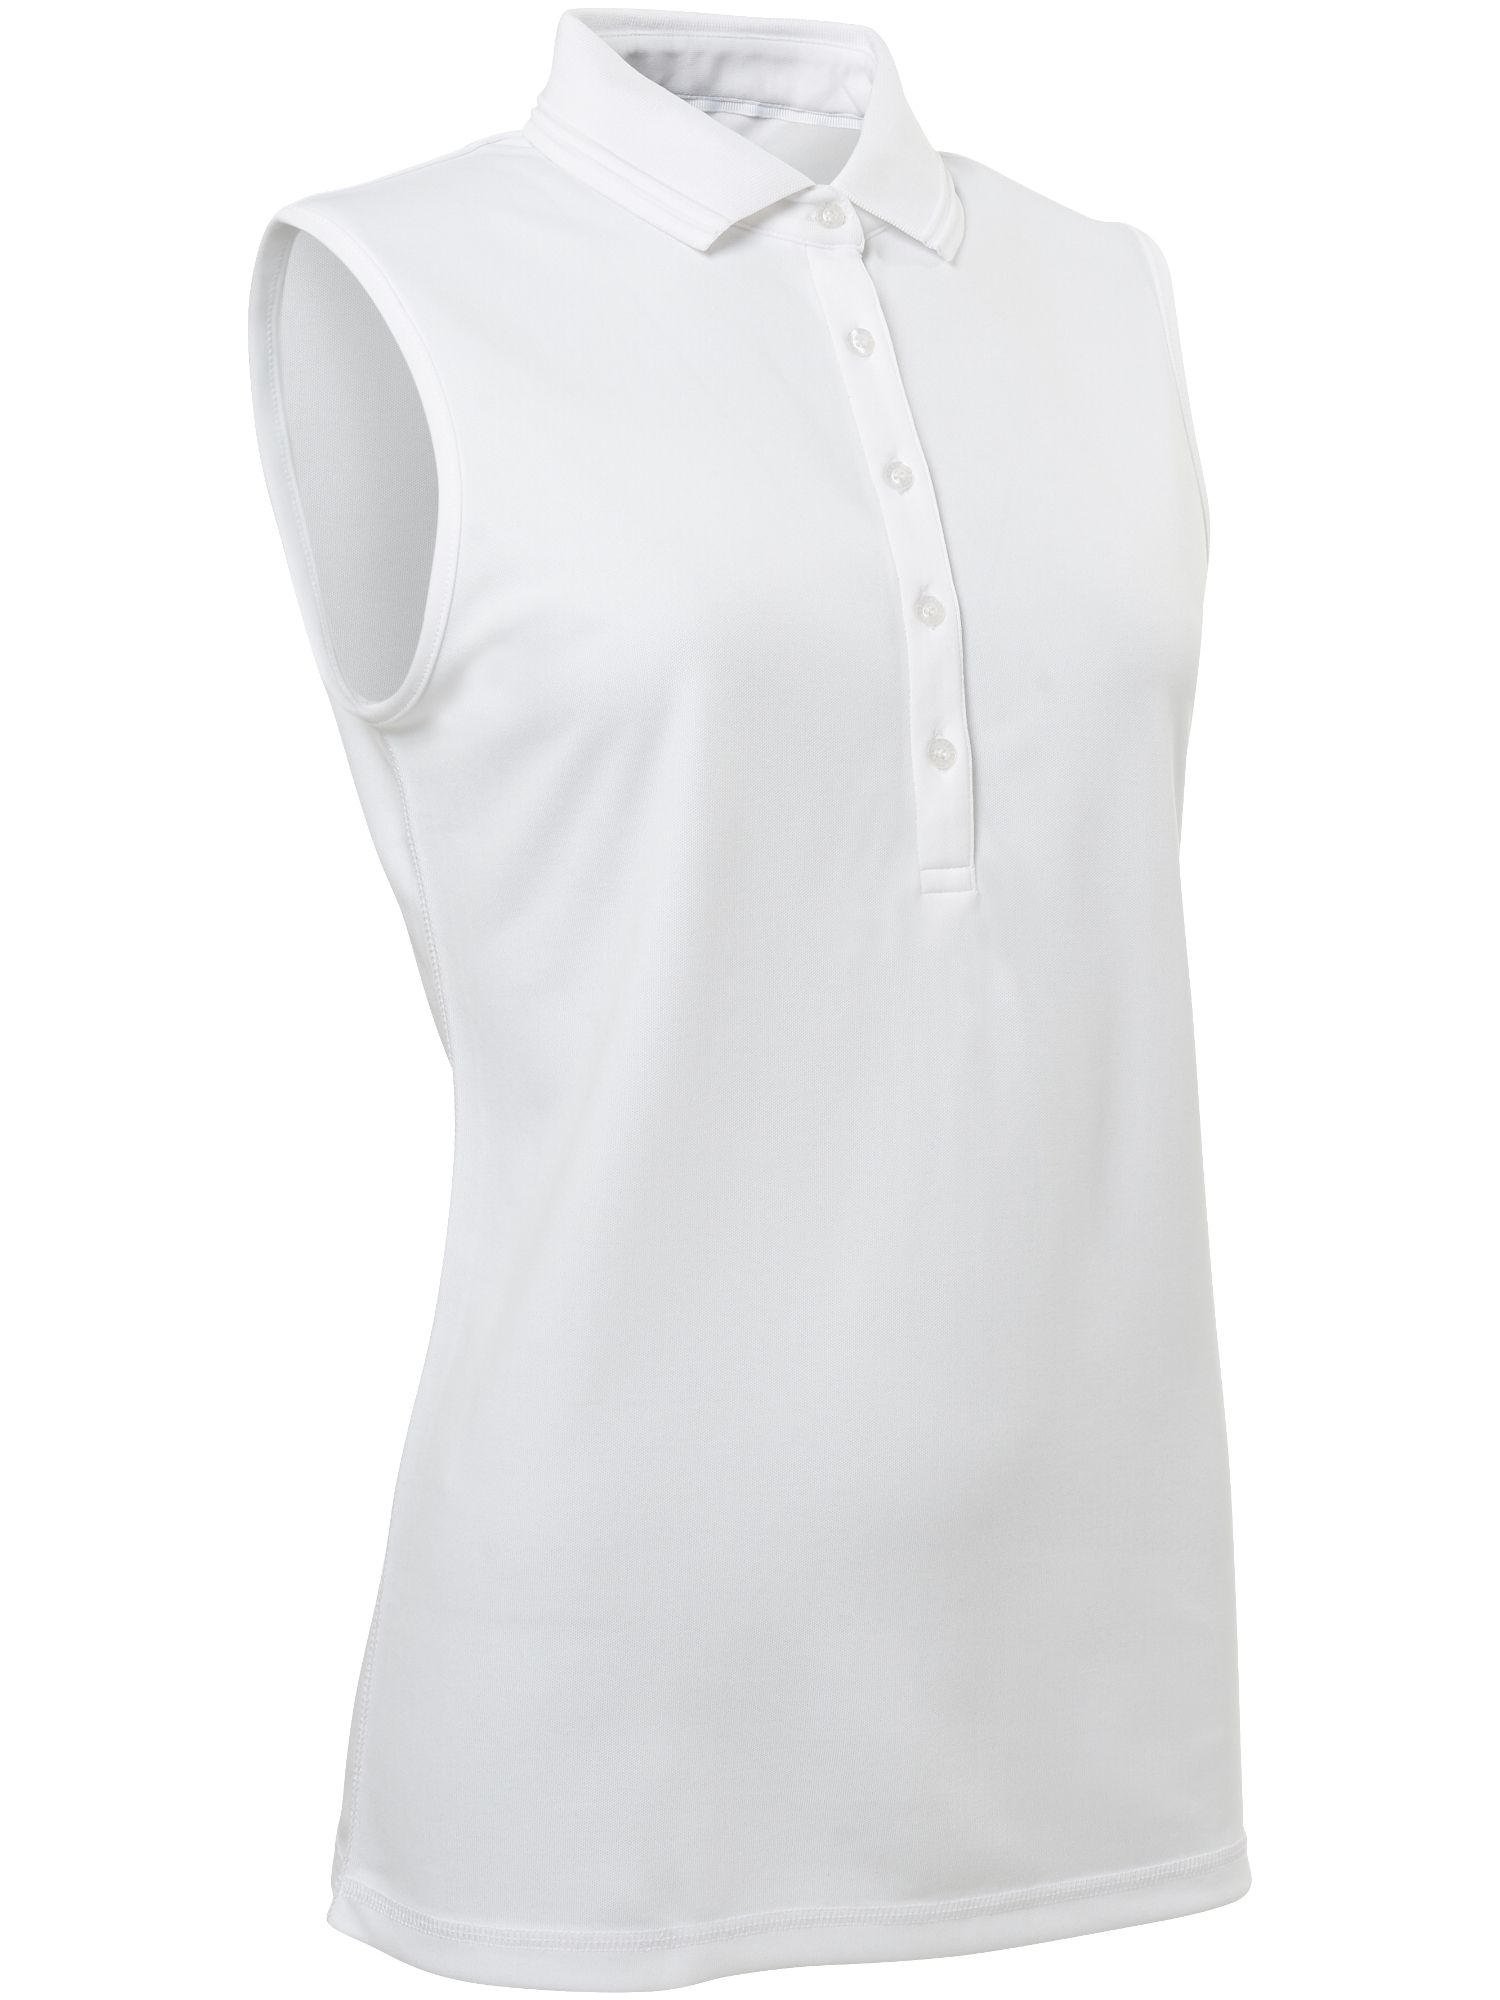 Abacus Clark Sleeveless Polo, White